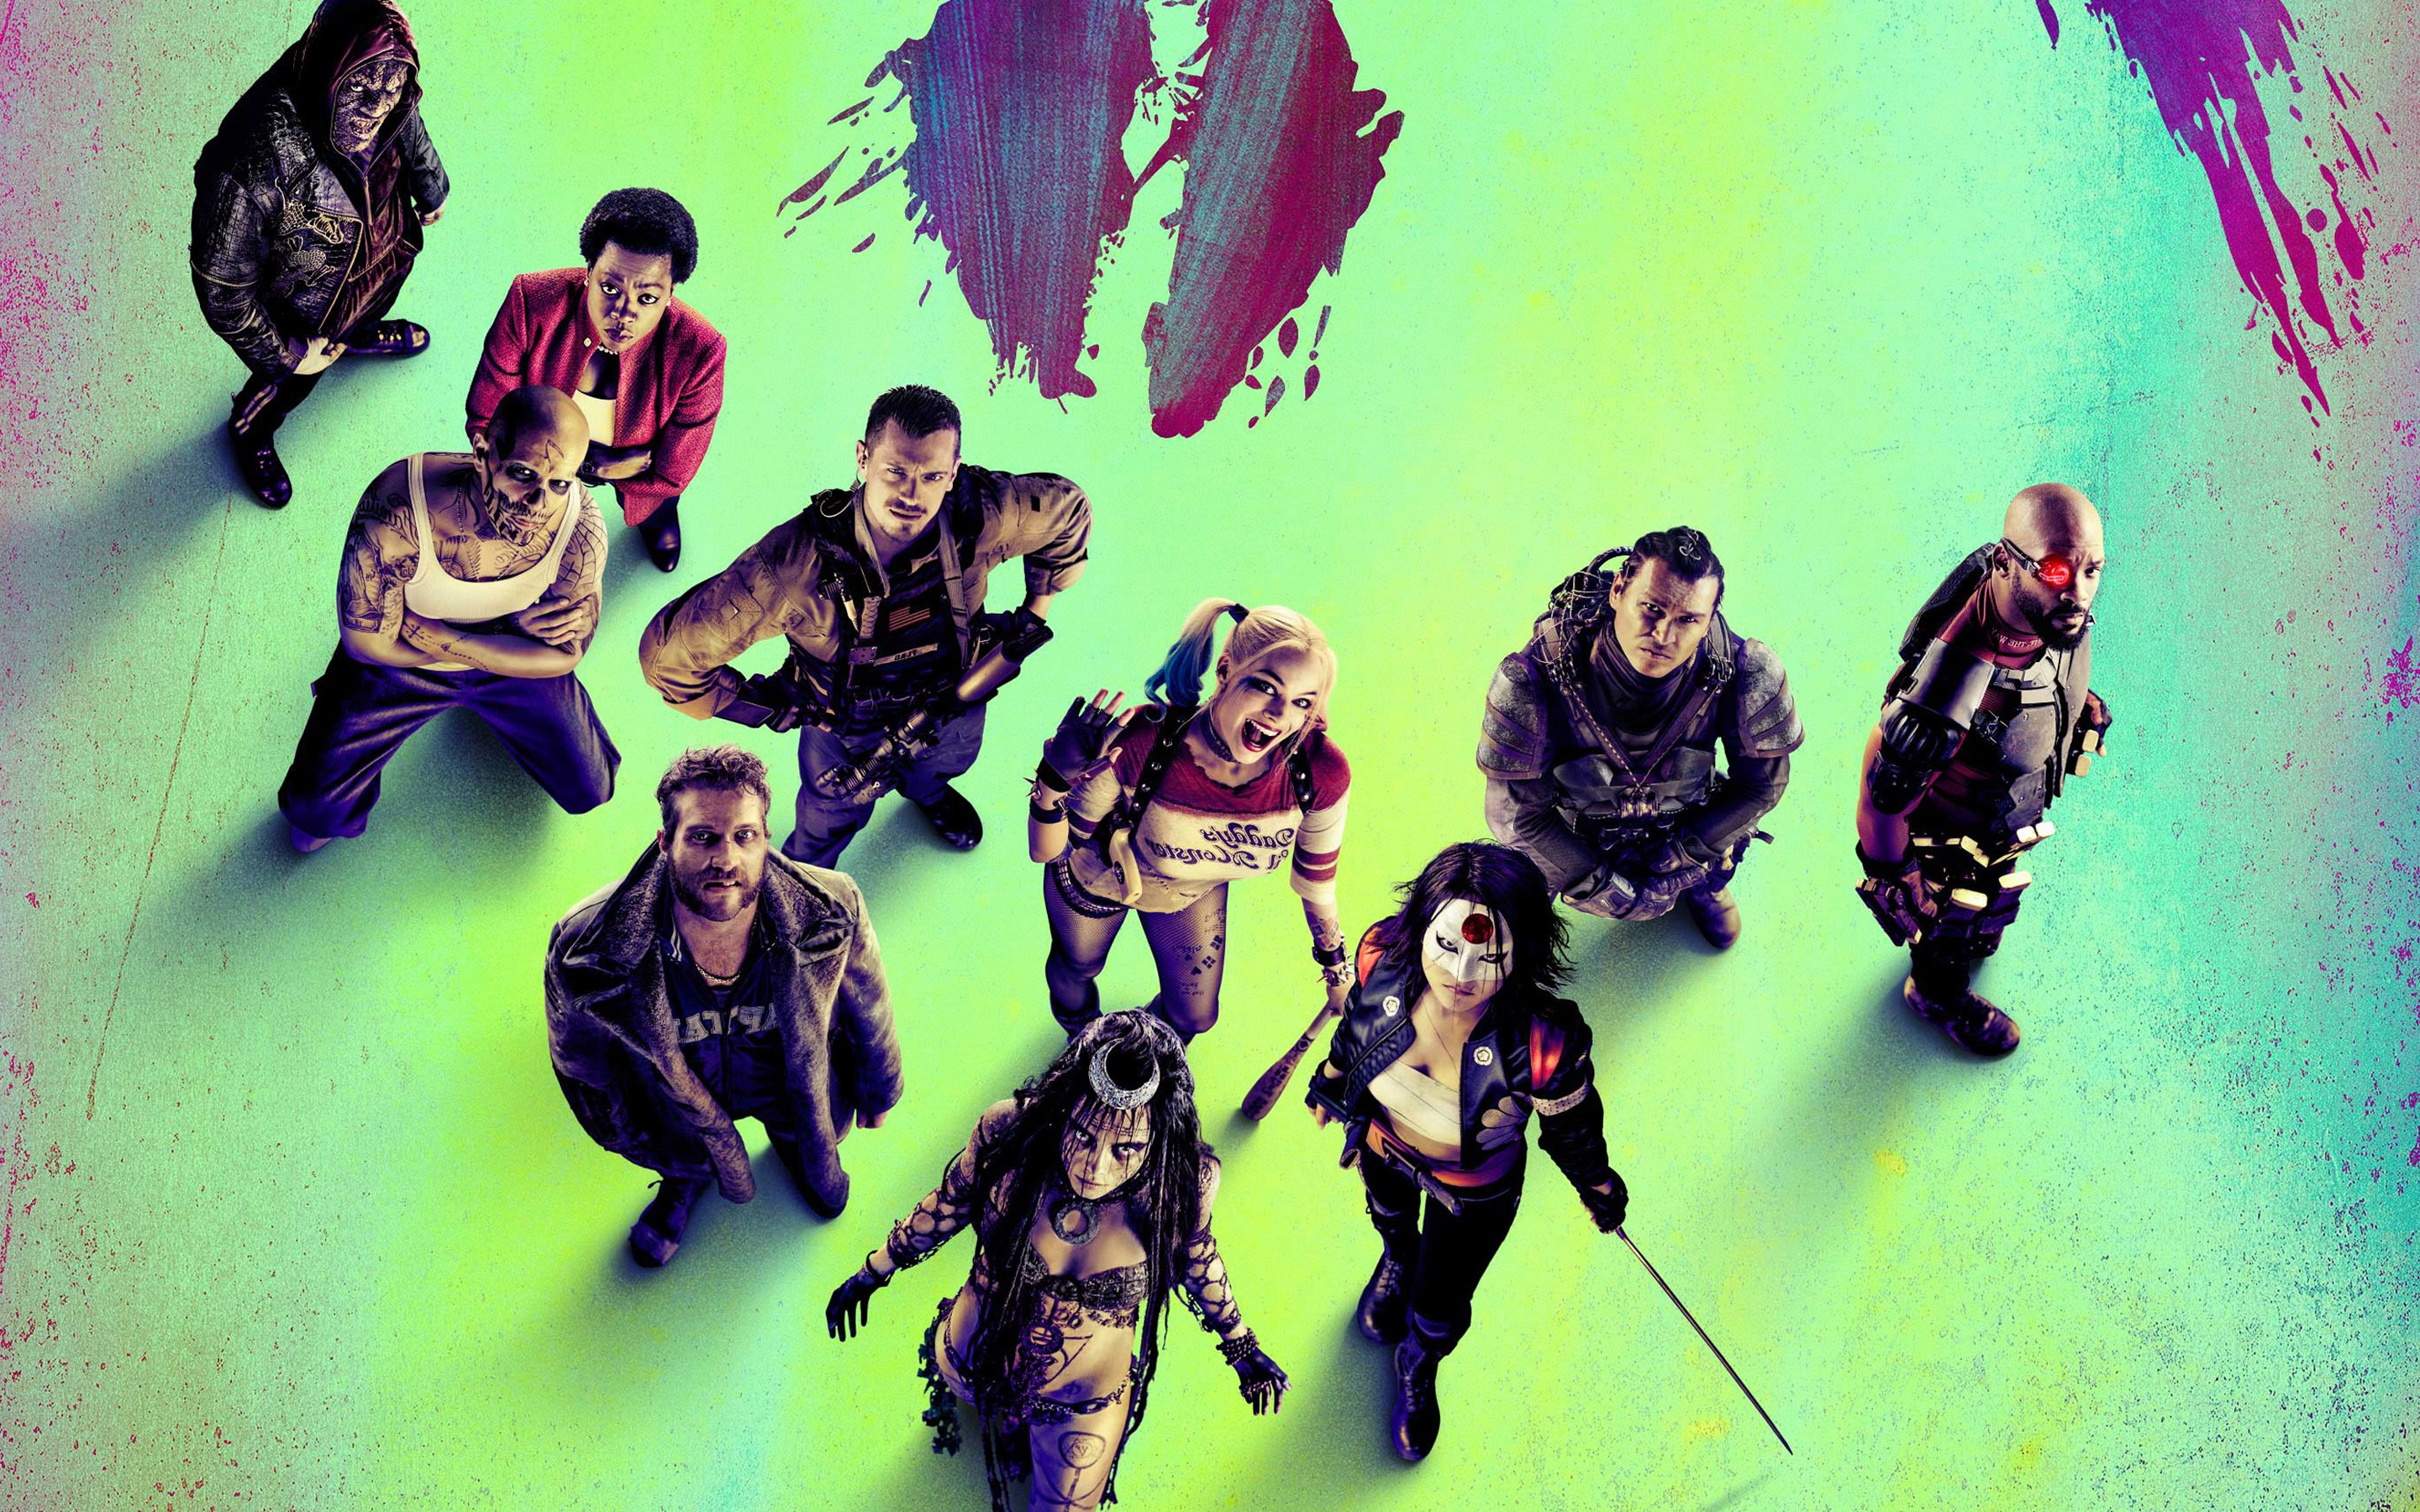 Recce Squad Hd Wallpapers: Suicide Squad, HD Movies, 4k Wallpapers, Images